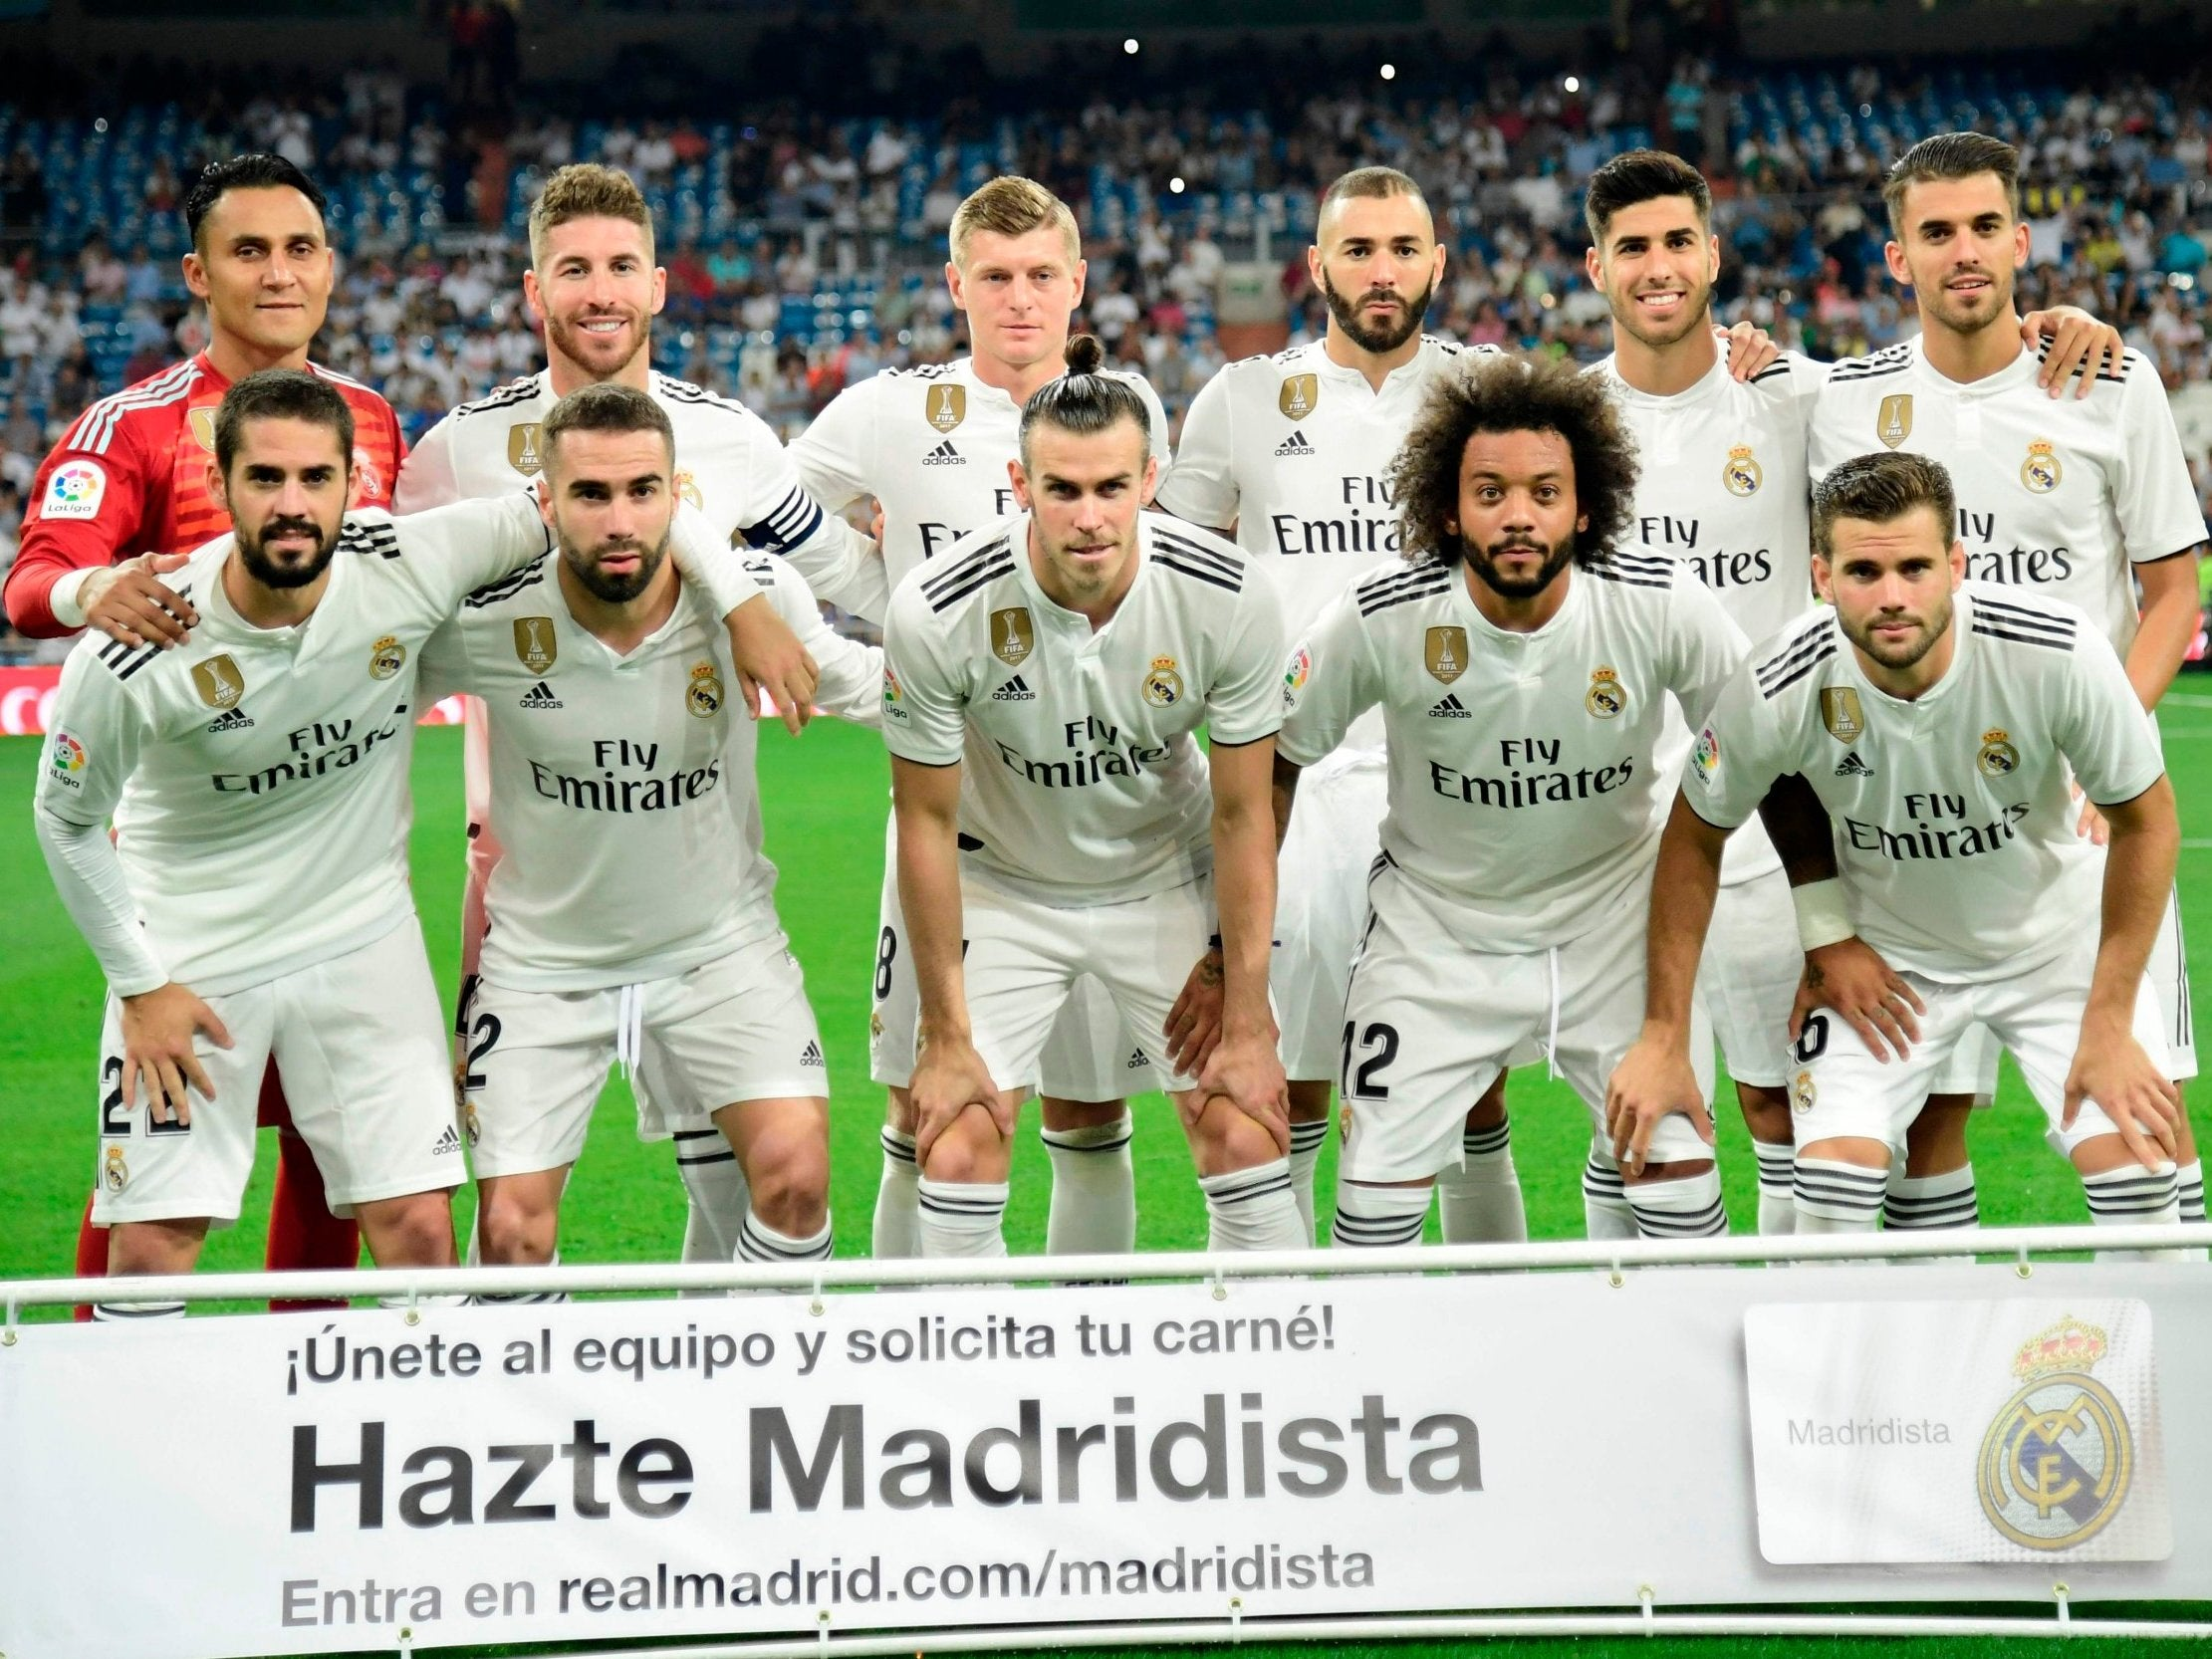 first real madrid game without cristiano ronaldo sees worst